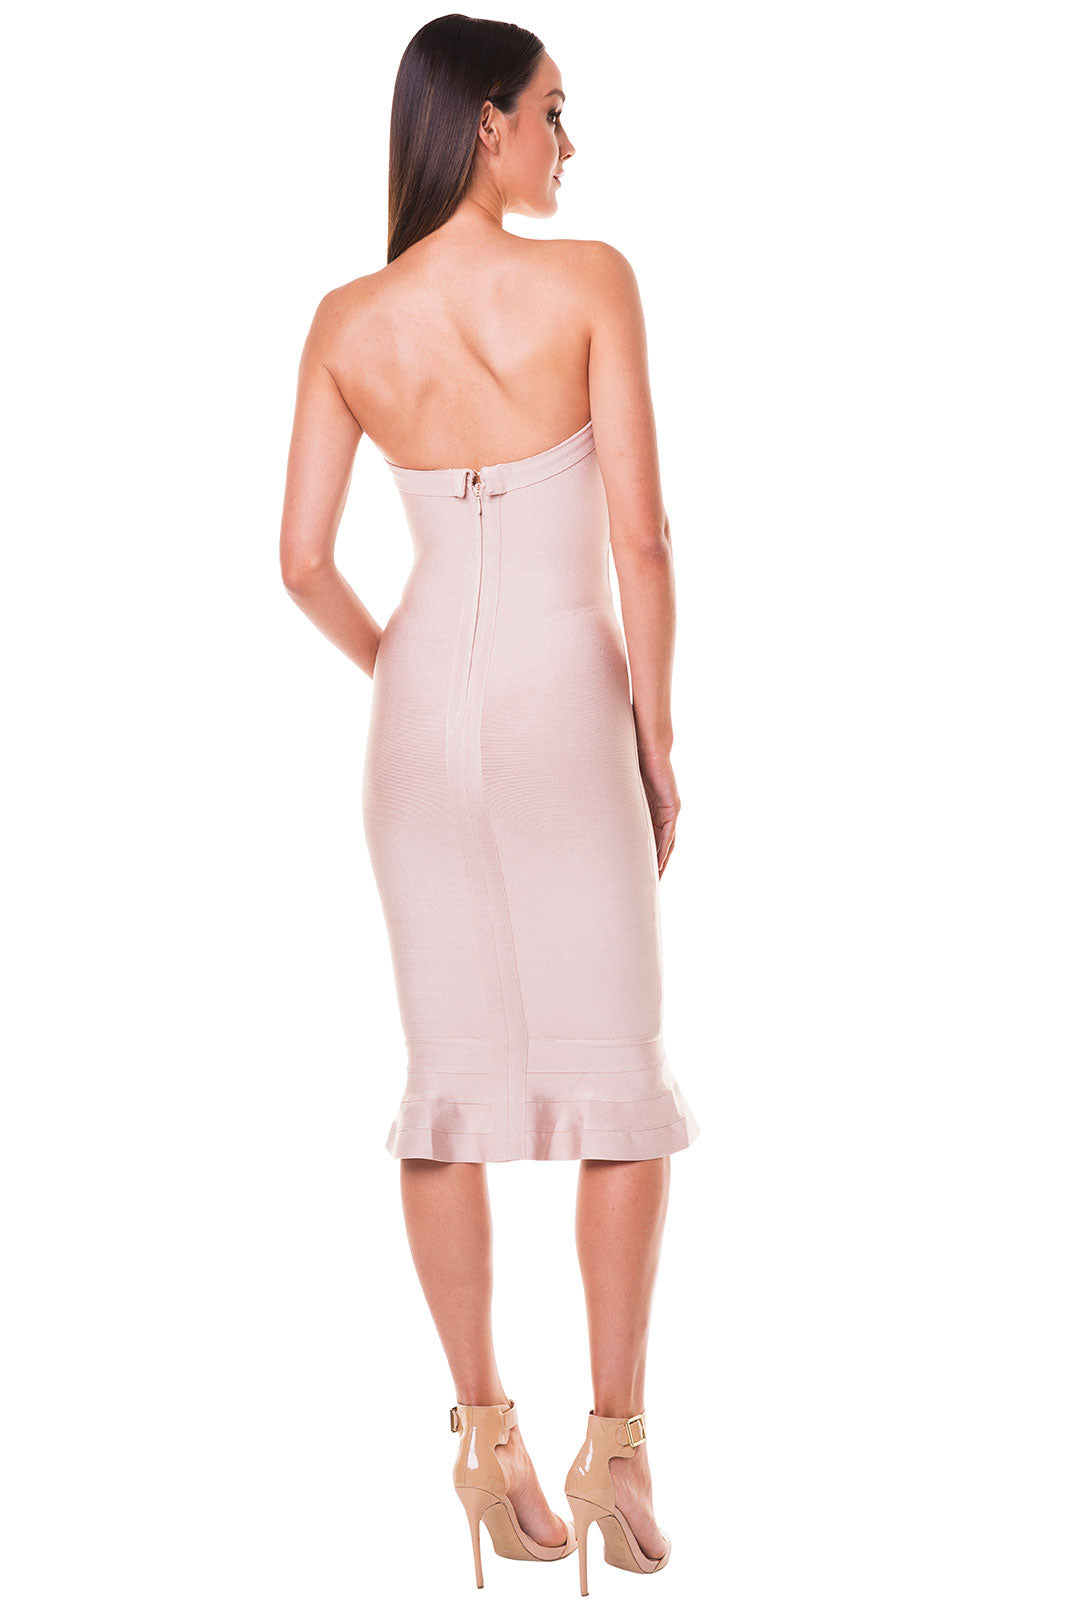 Layla Strapless Fluted Hem Bandage Dress - Nude